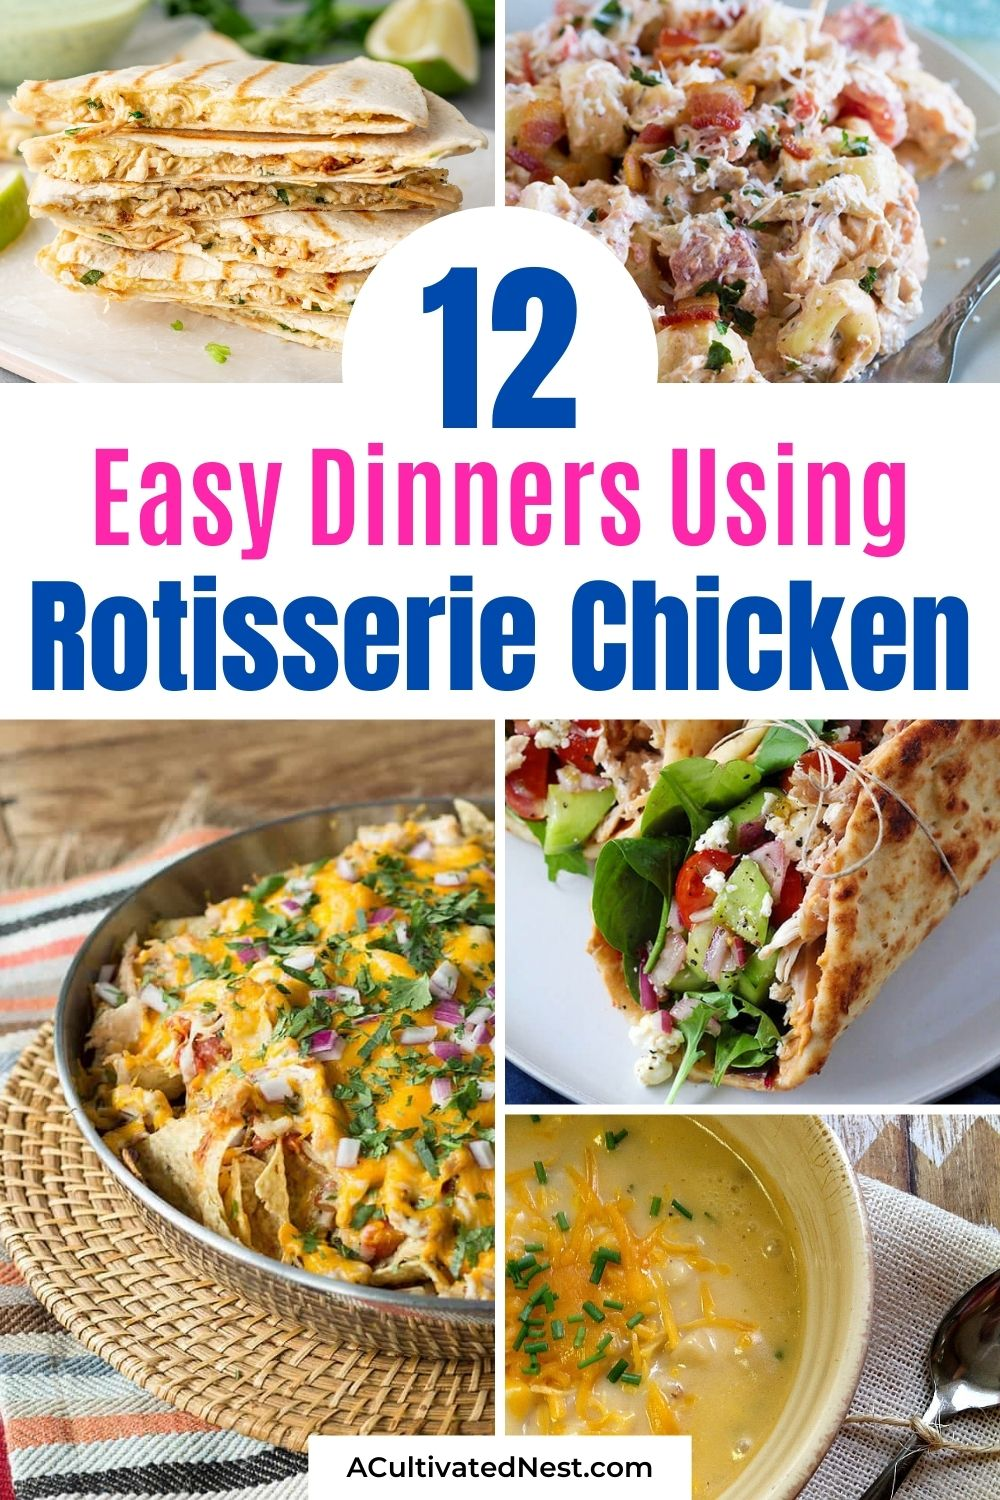 12 Easy Meals You Can Make With Rotisserie Chicken